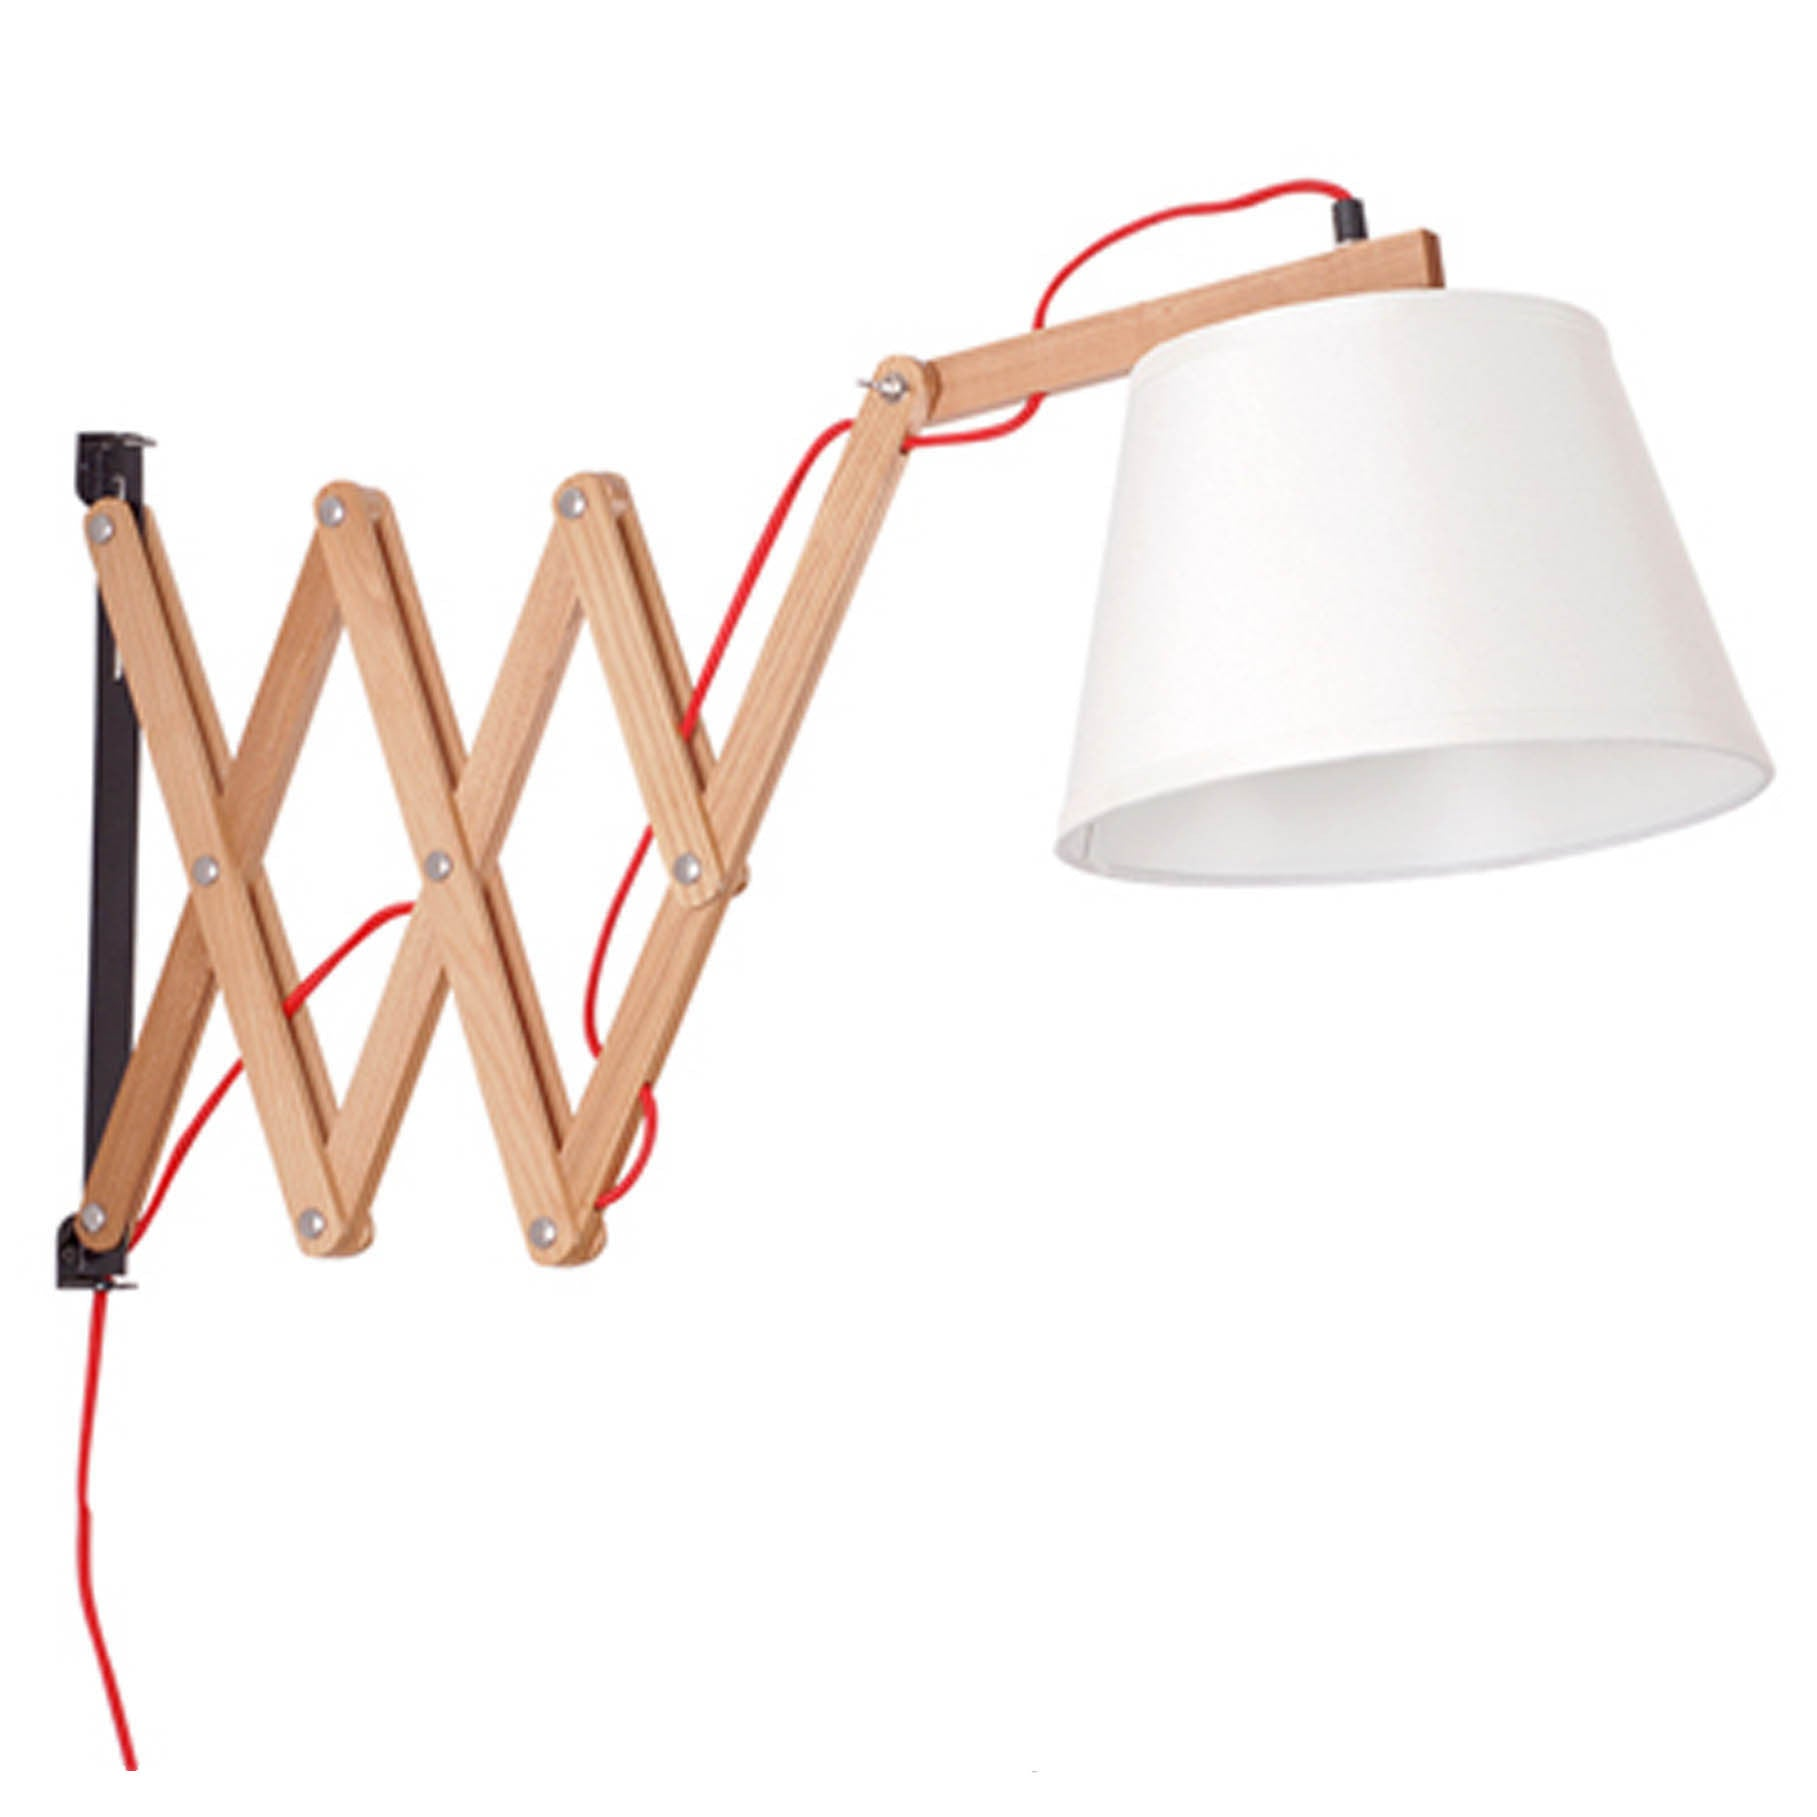 Flixa spring wall lamp FX0041 -  ebarza - Shop Online Furniture and Home Decor Store in Dubai, UAE at ebarza